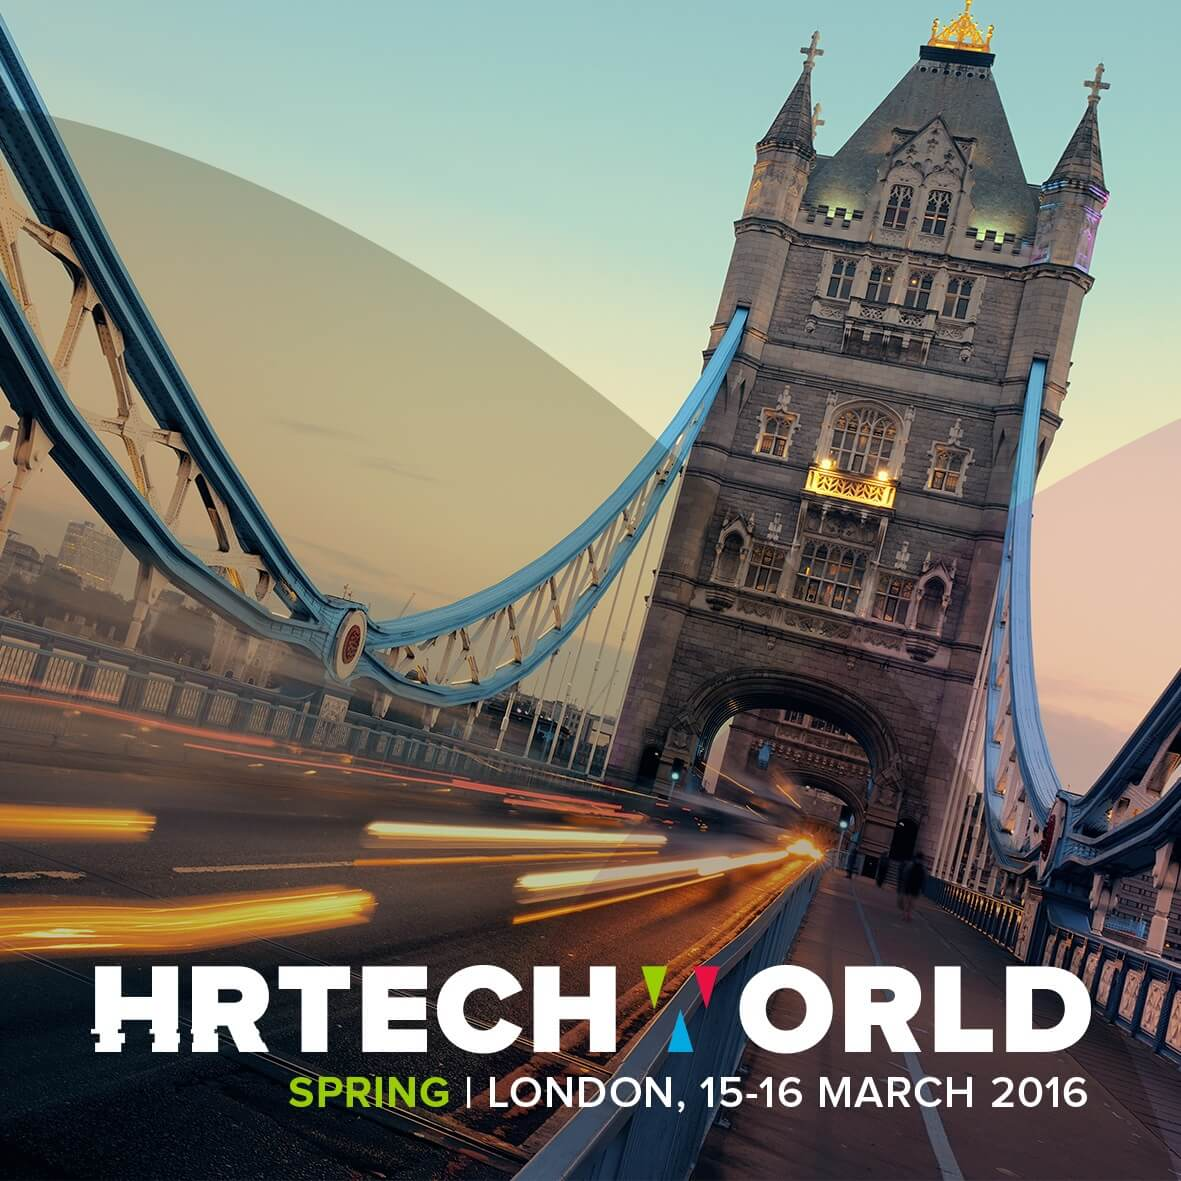 hrn_marketing_banner_towerbridge — Relocateme.eu - Job relocation service